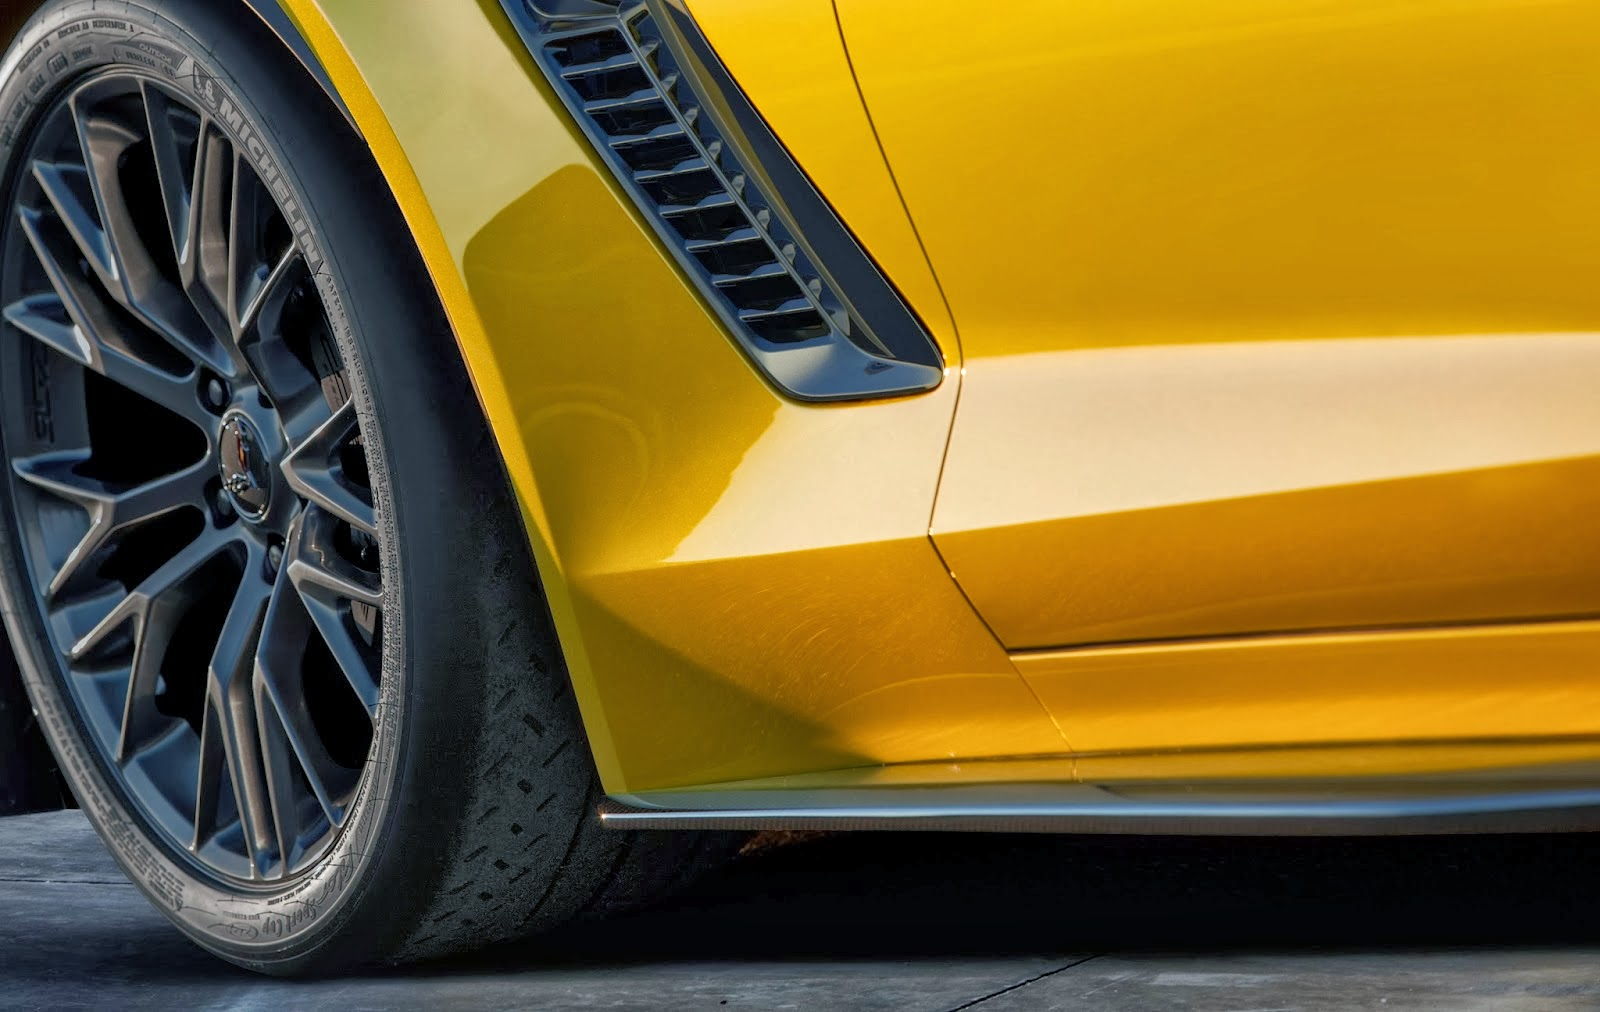 2015 Chevrolet Corvette Z06 Debut Planned